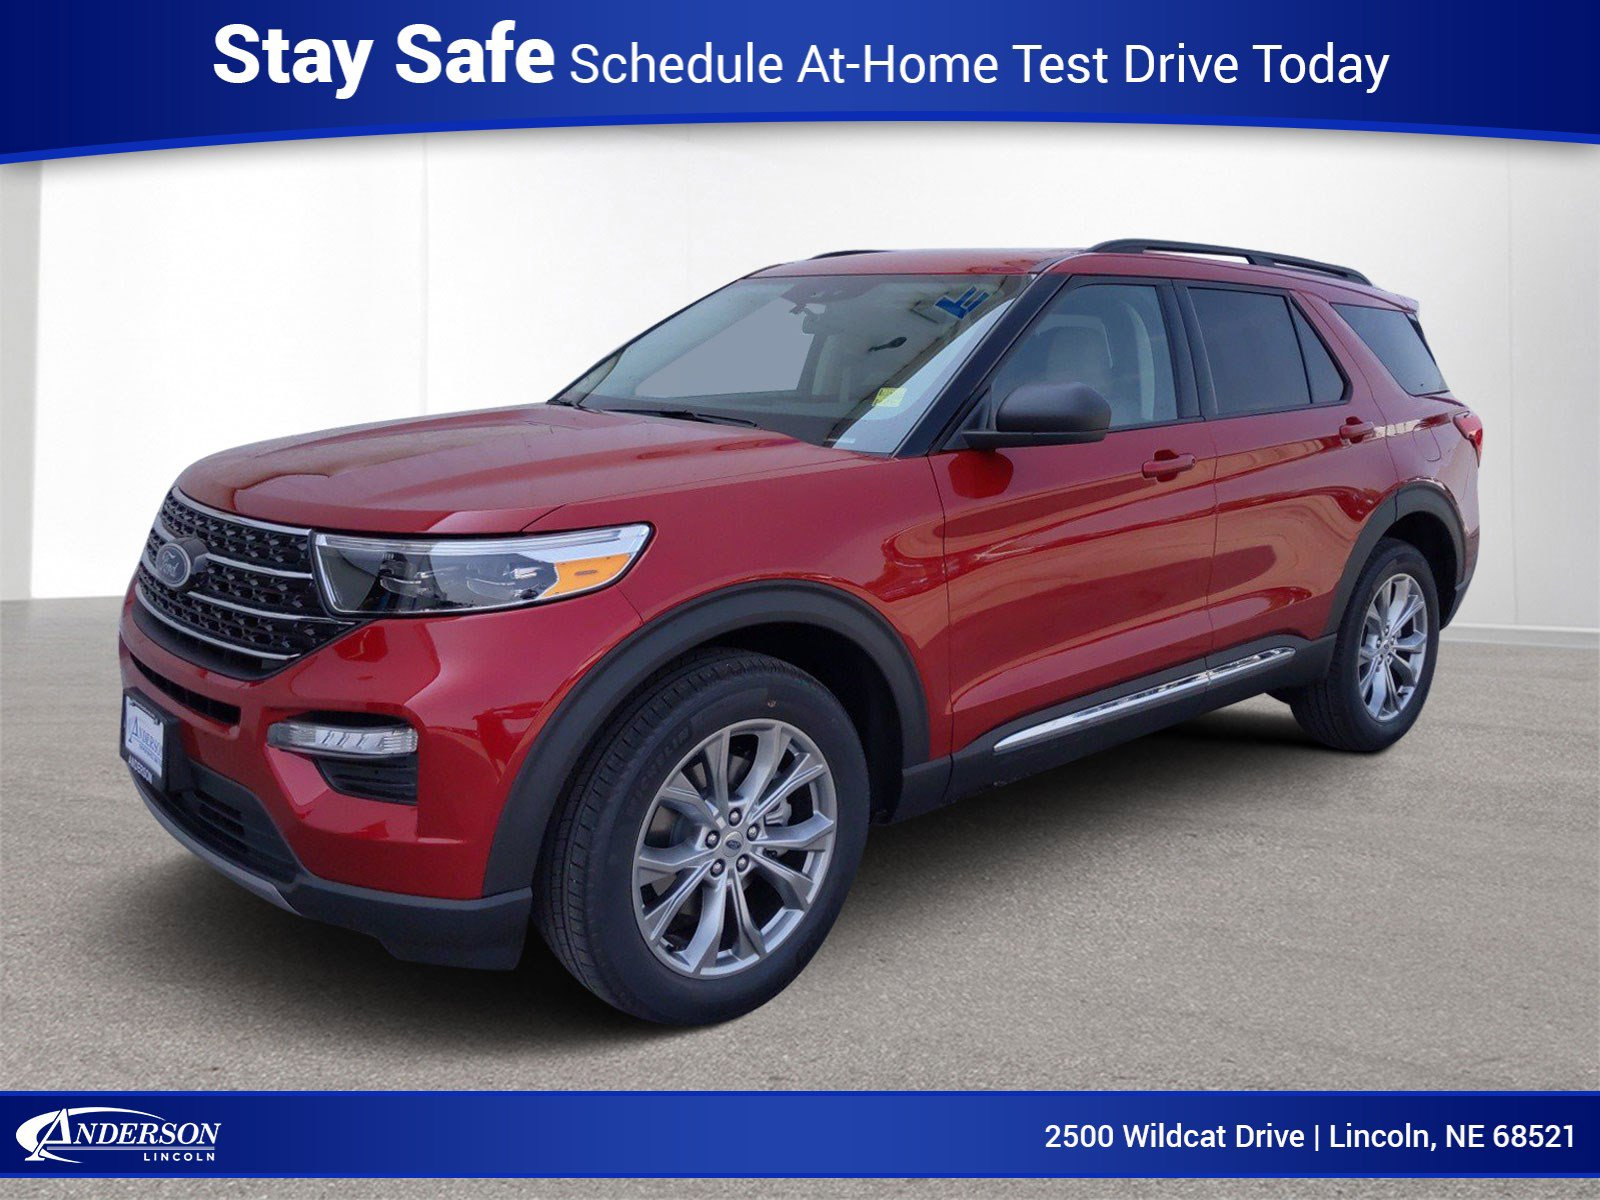 New 2020 Ford Explorer XLT 4WD Stock: L22717